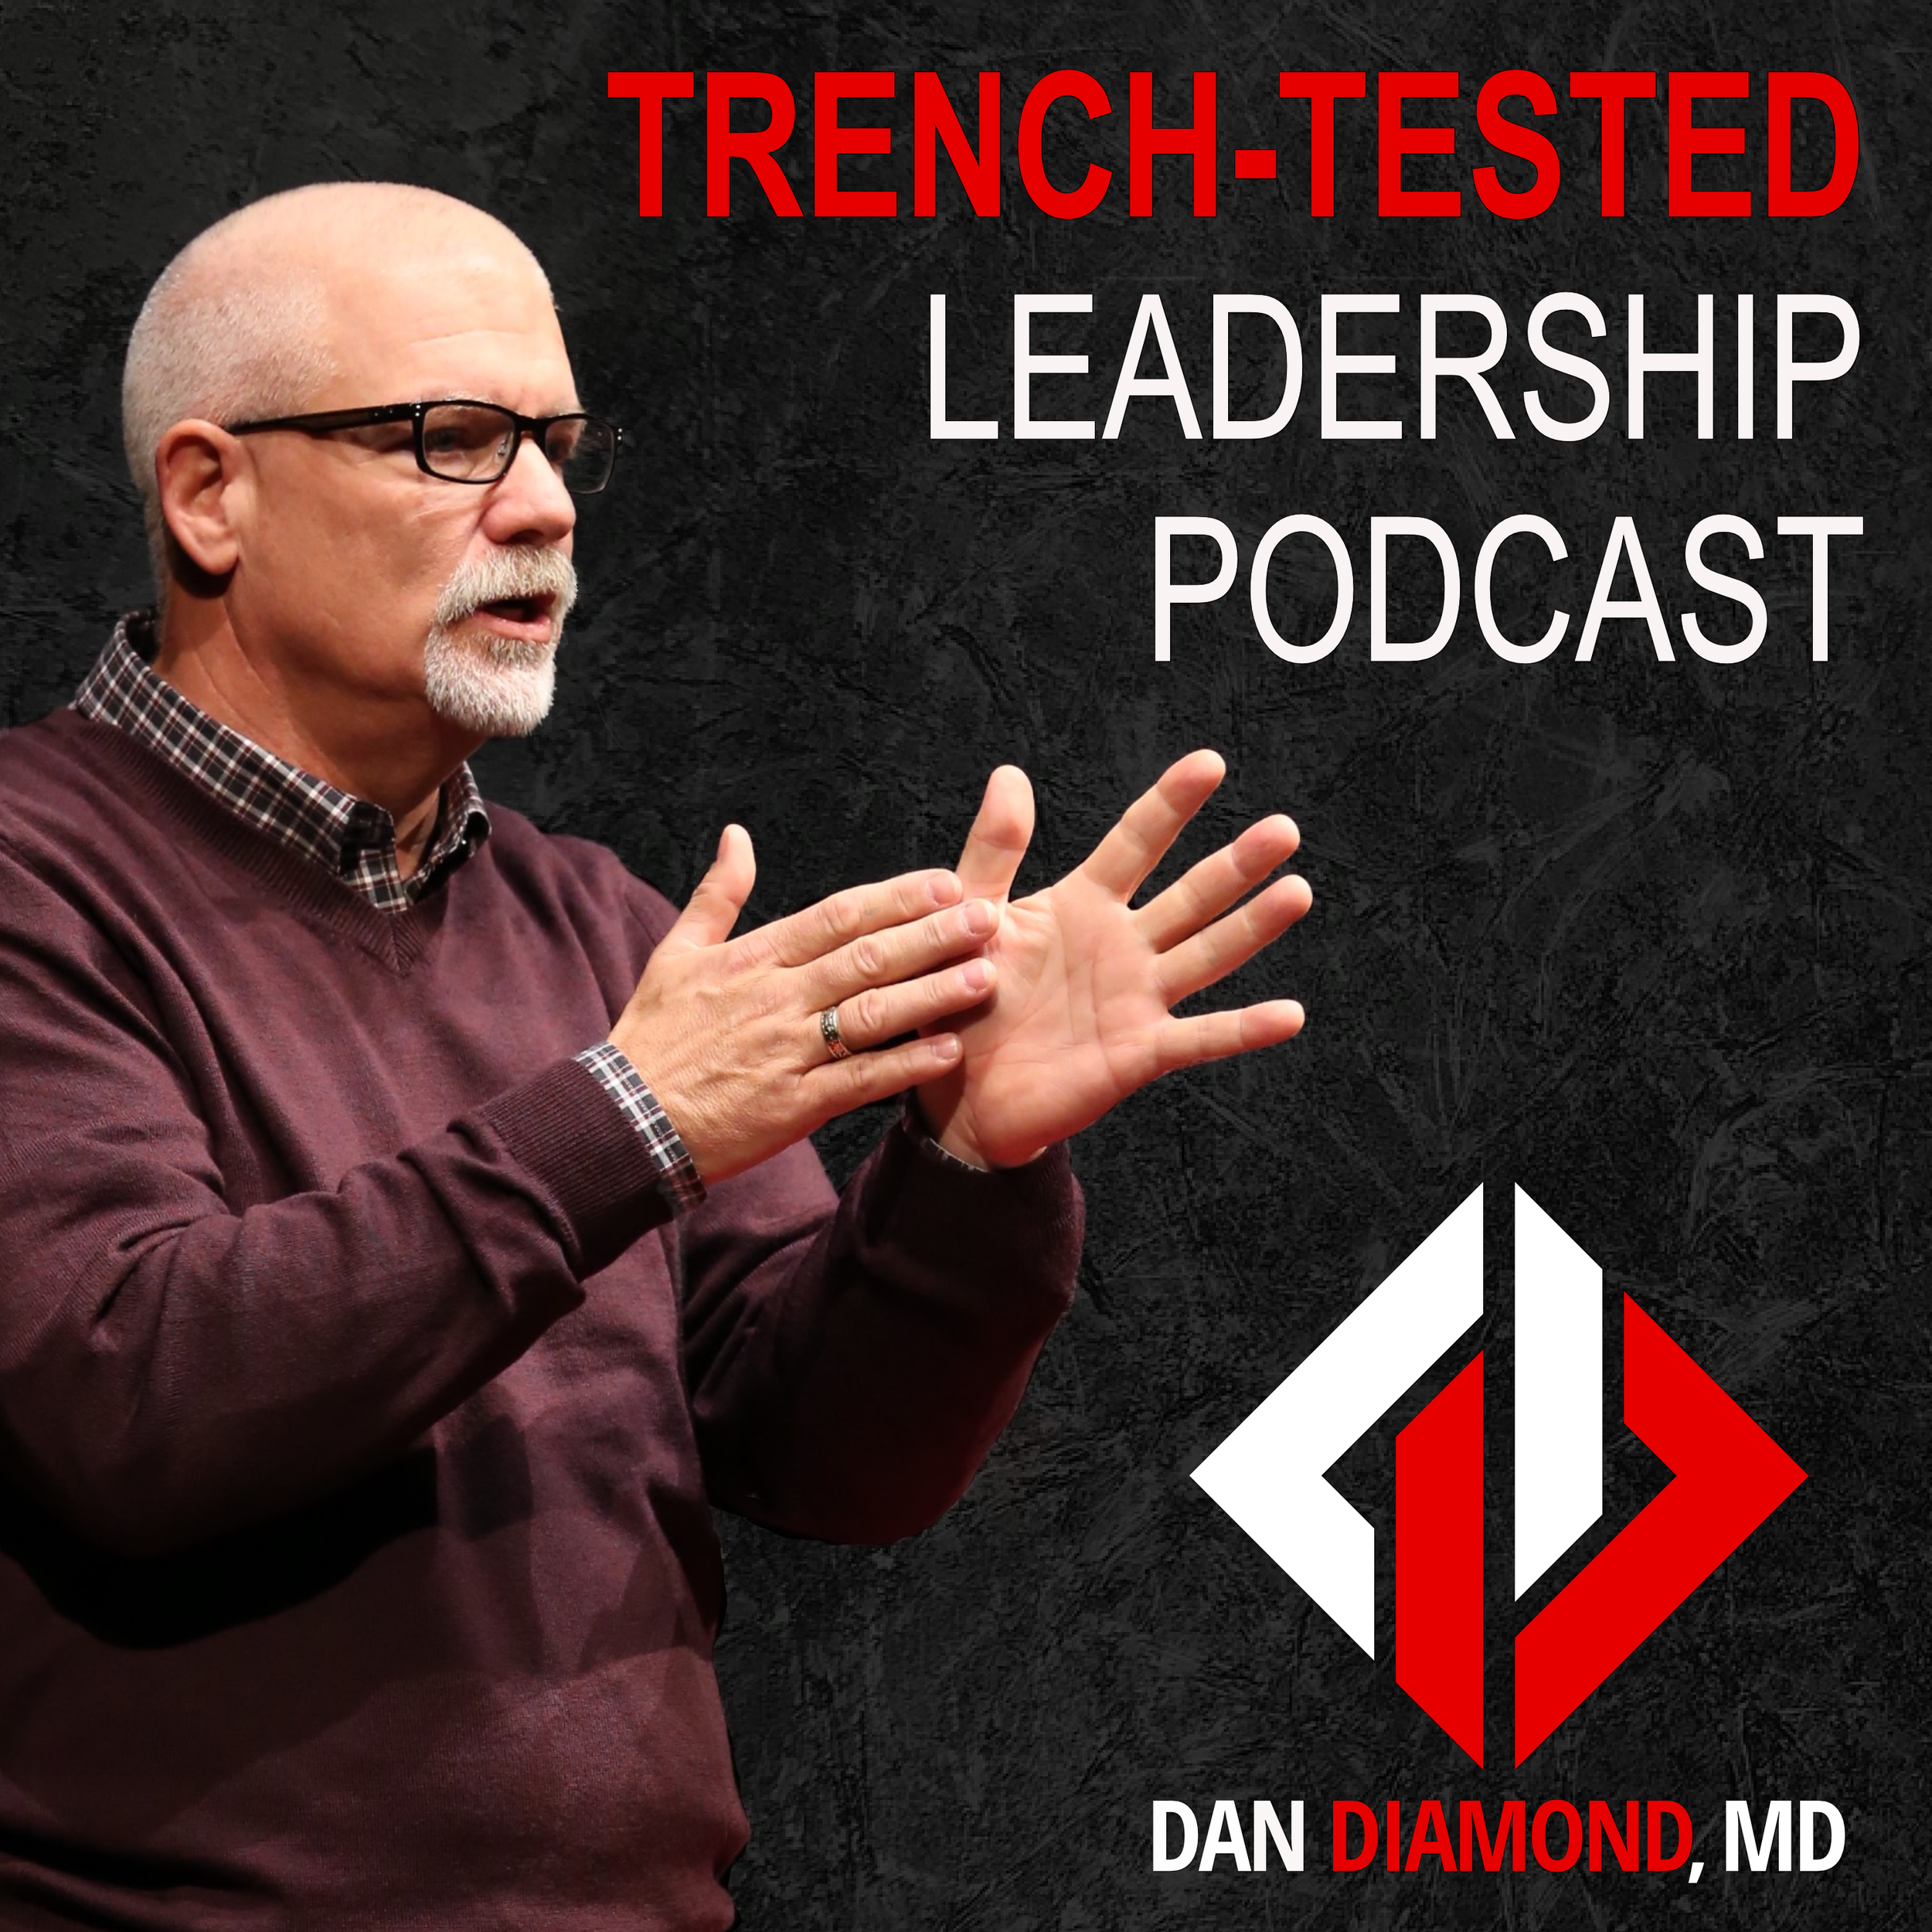 DAN DIAMOND MD LEADERSHIP PODCAST V4.0 3000x3000.png